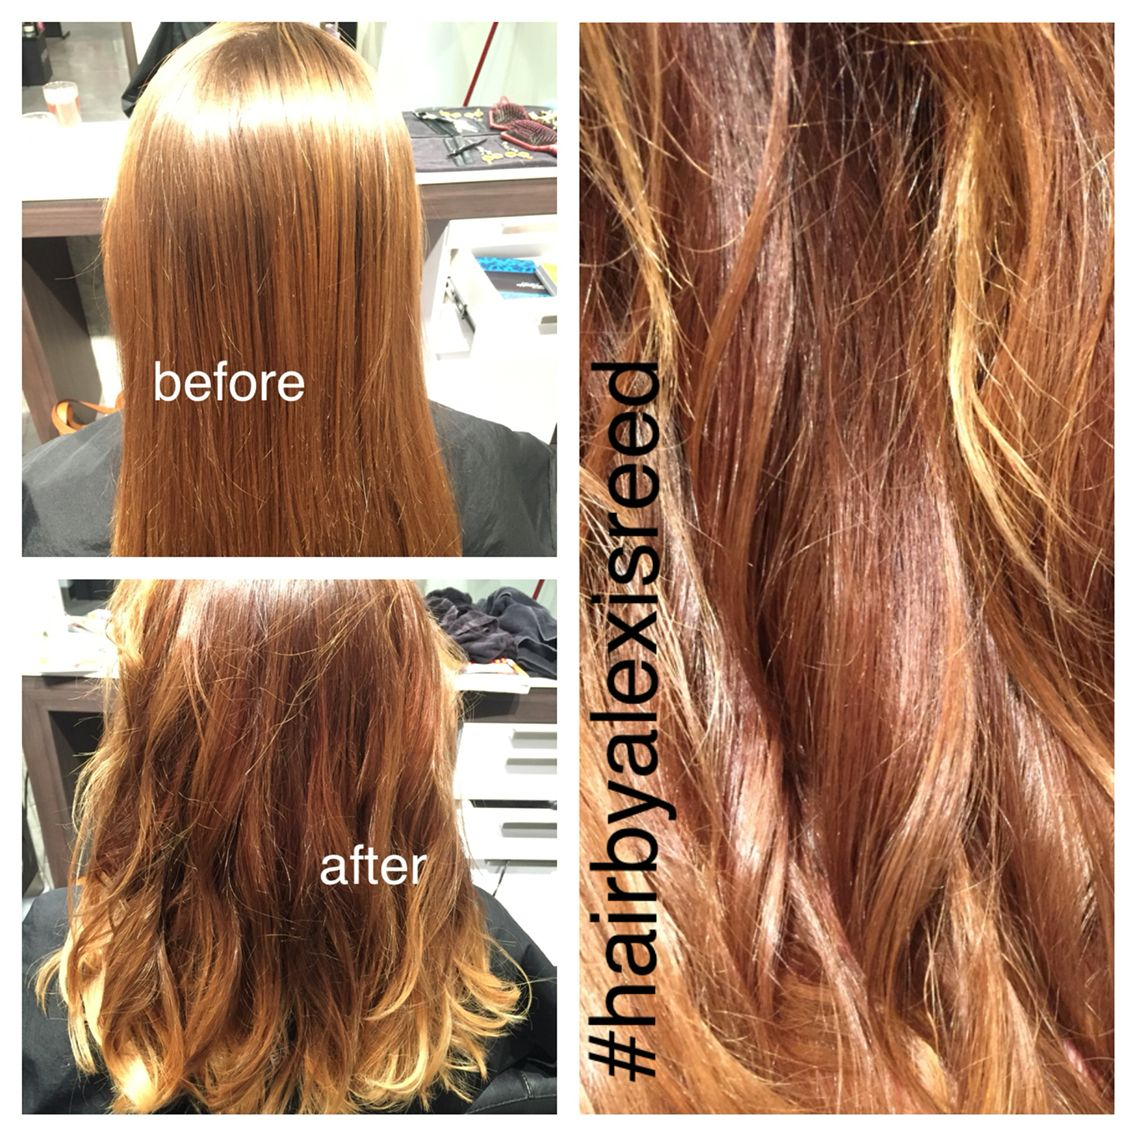 Lightened her ends and darkened her regrowth #fiesty #hairbyalexisreed